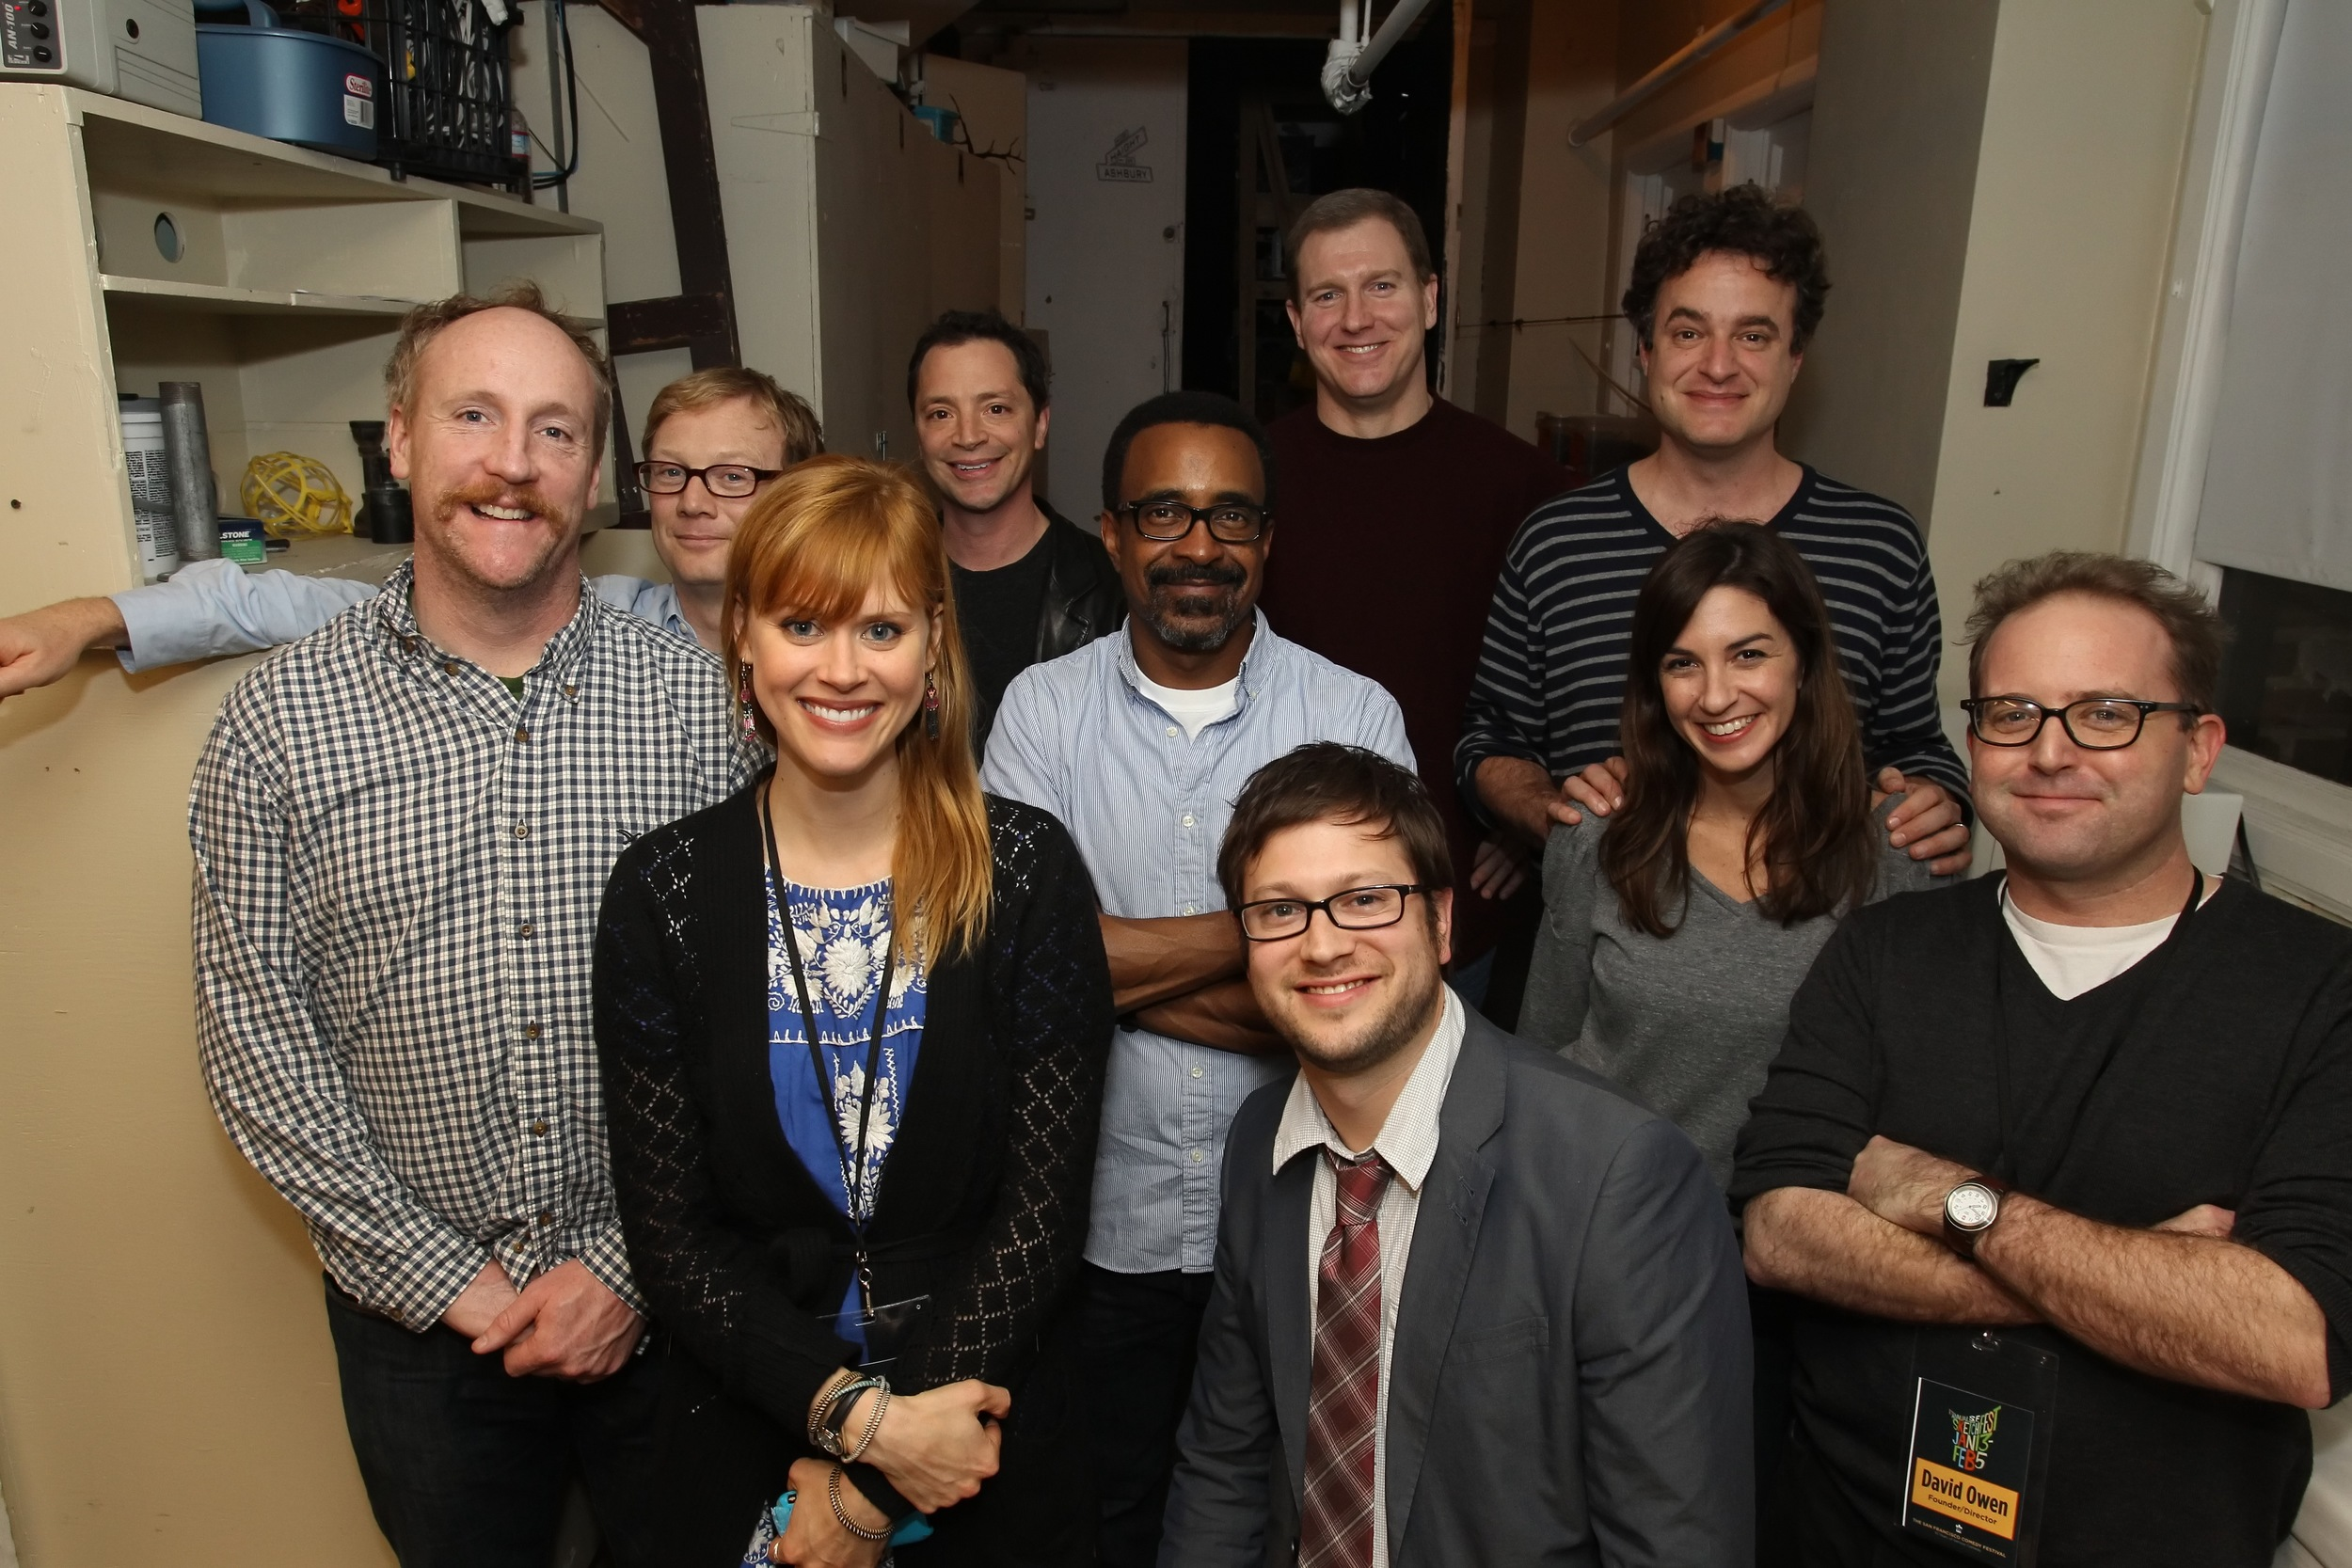 Matt Walsh, Andy Daly, Janet Varney, Joshua Malina, Tim Meadows, Ian Roberts, Matt Besser, Danielle Schneider and David Owen. Photo by Jakub Mosur.